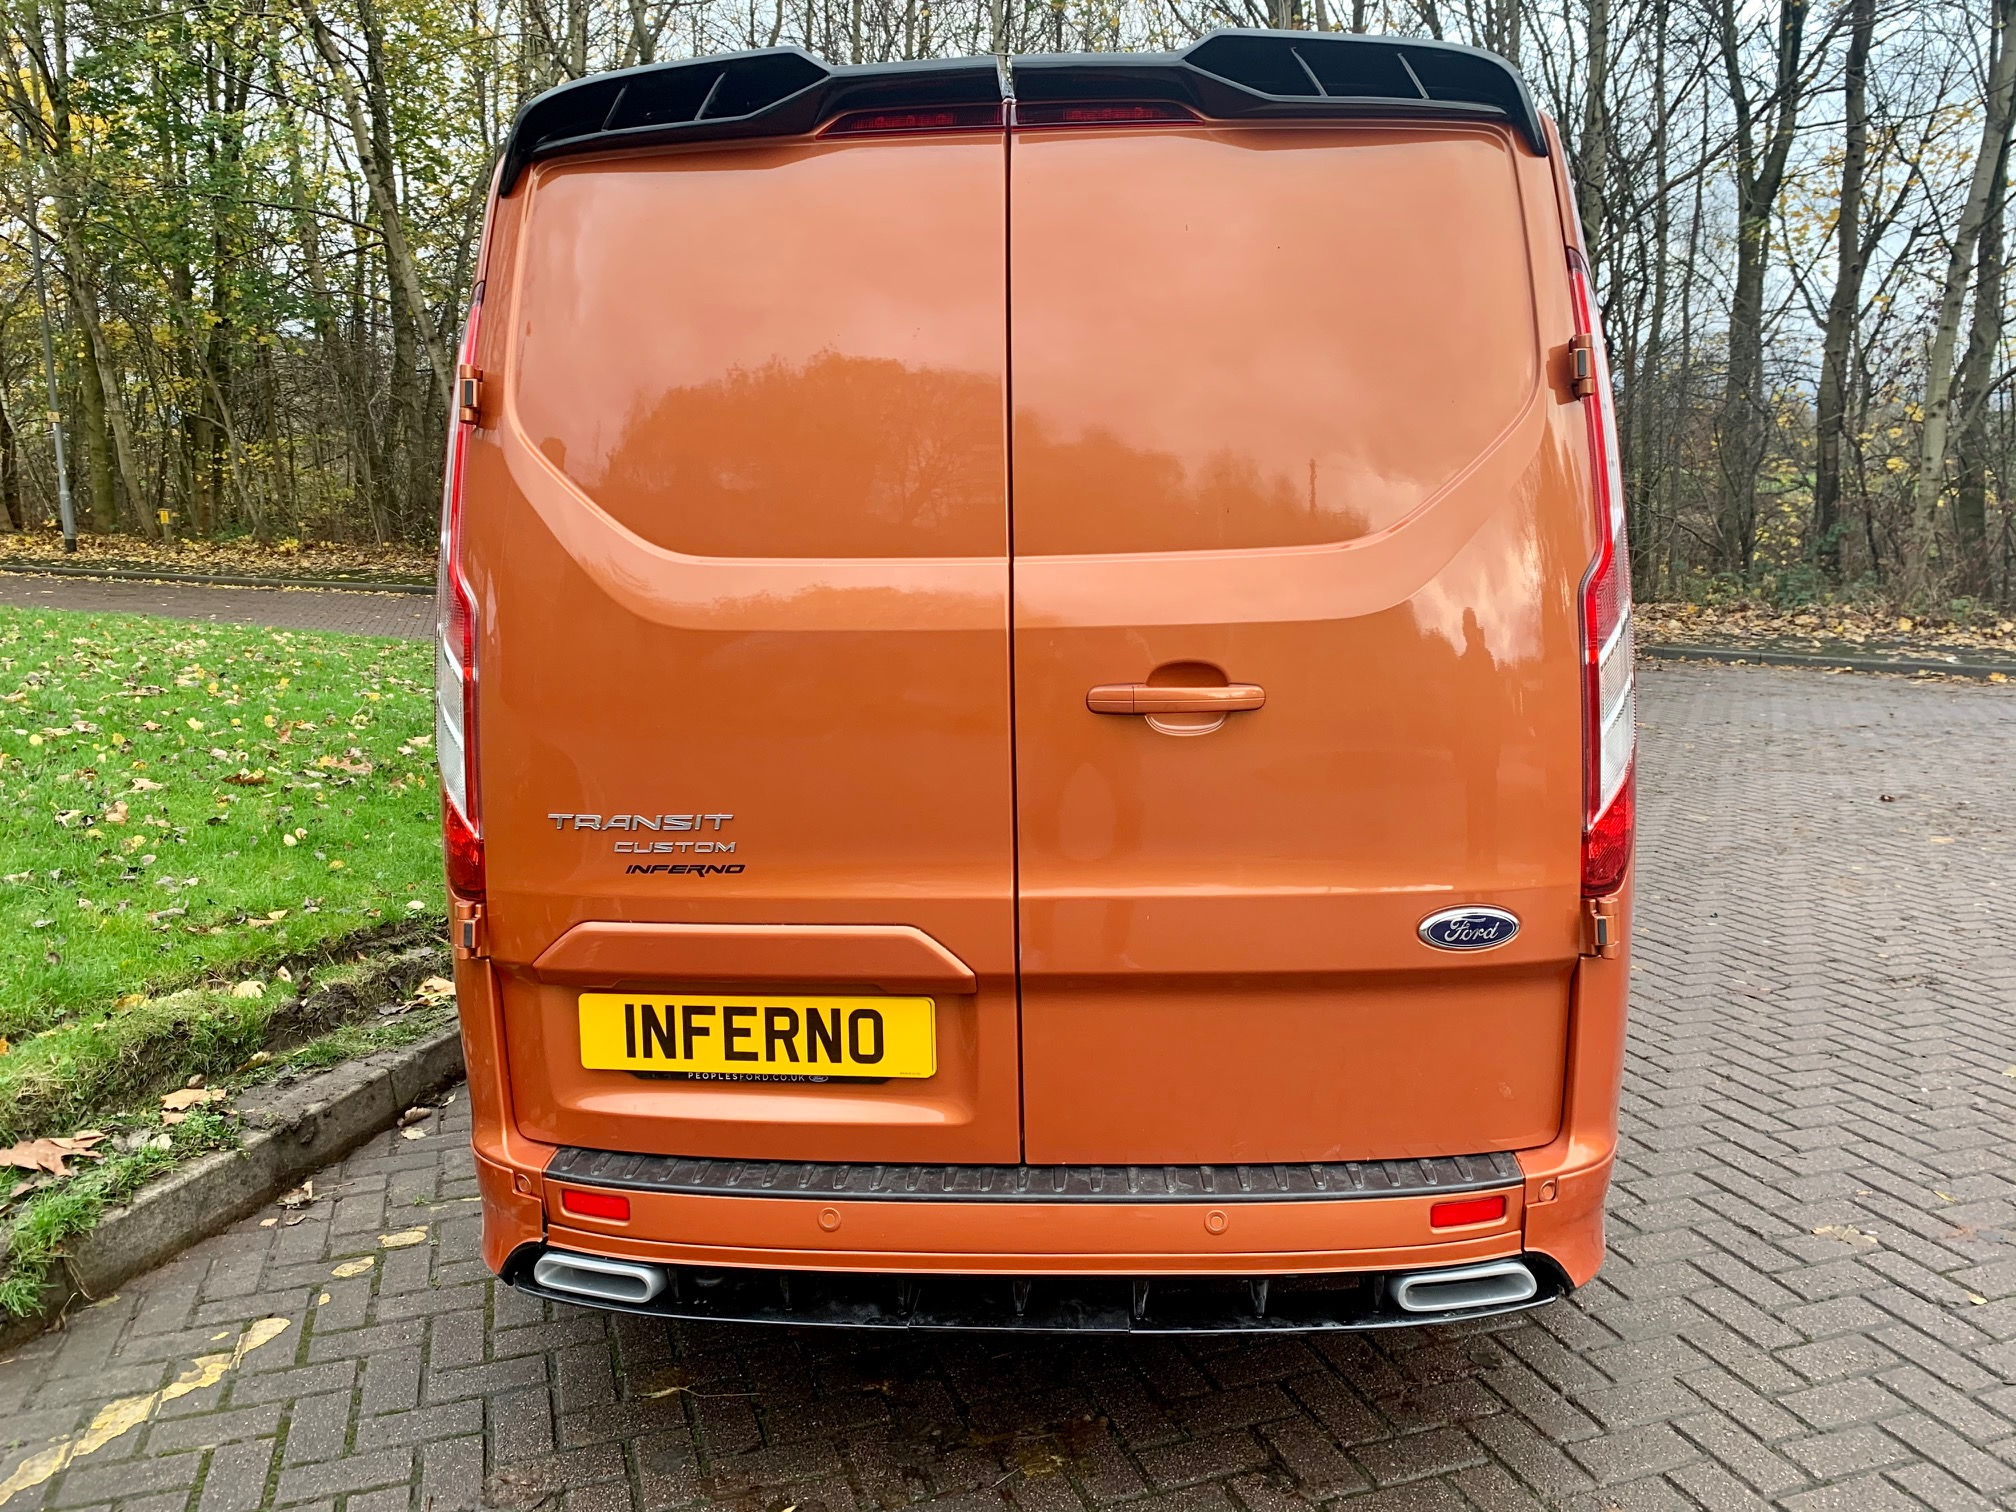 IMG_8020.jpg - 320 L2 DIESEL FWD 2.0 EcoBlue 185ps Low Roof Limited Van Auto Inferno-X